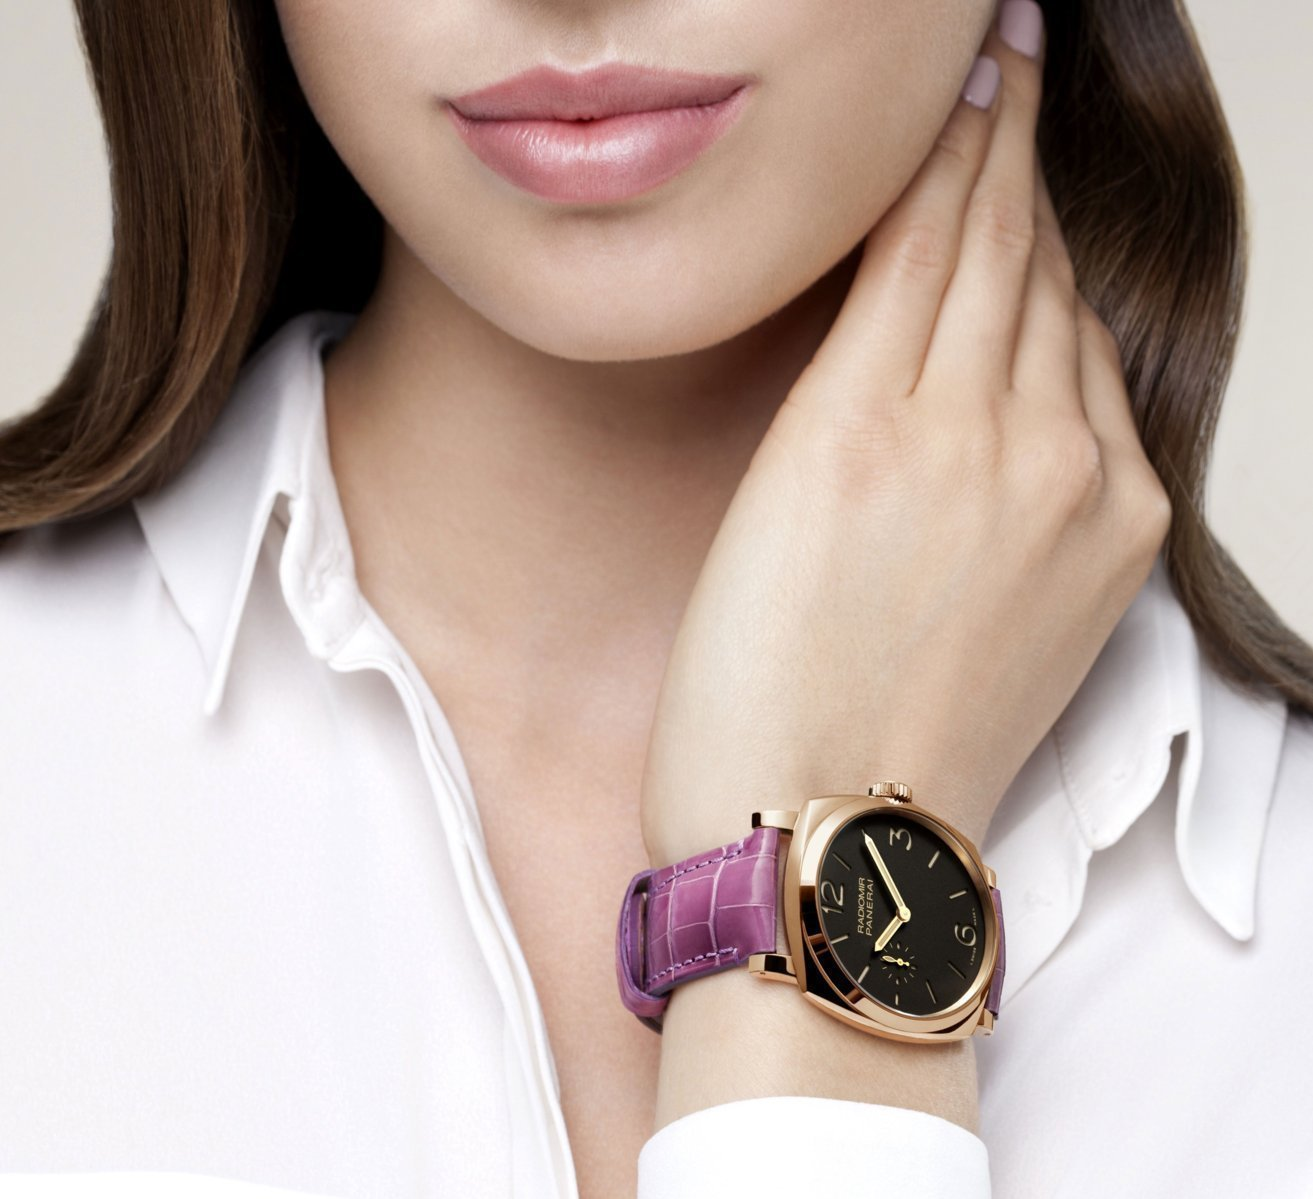 Ladies wrist strap watches